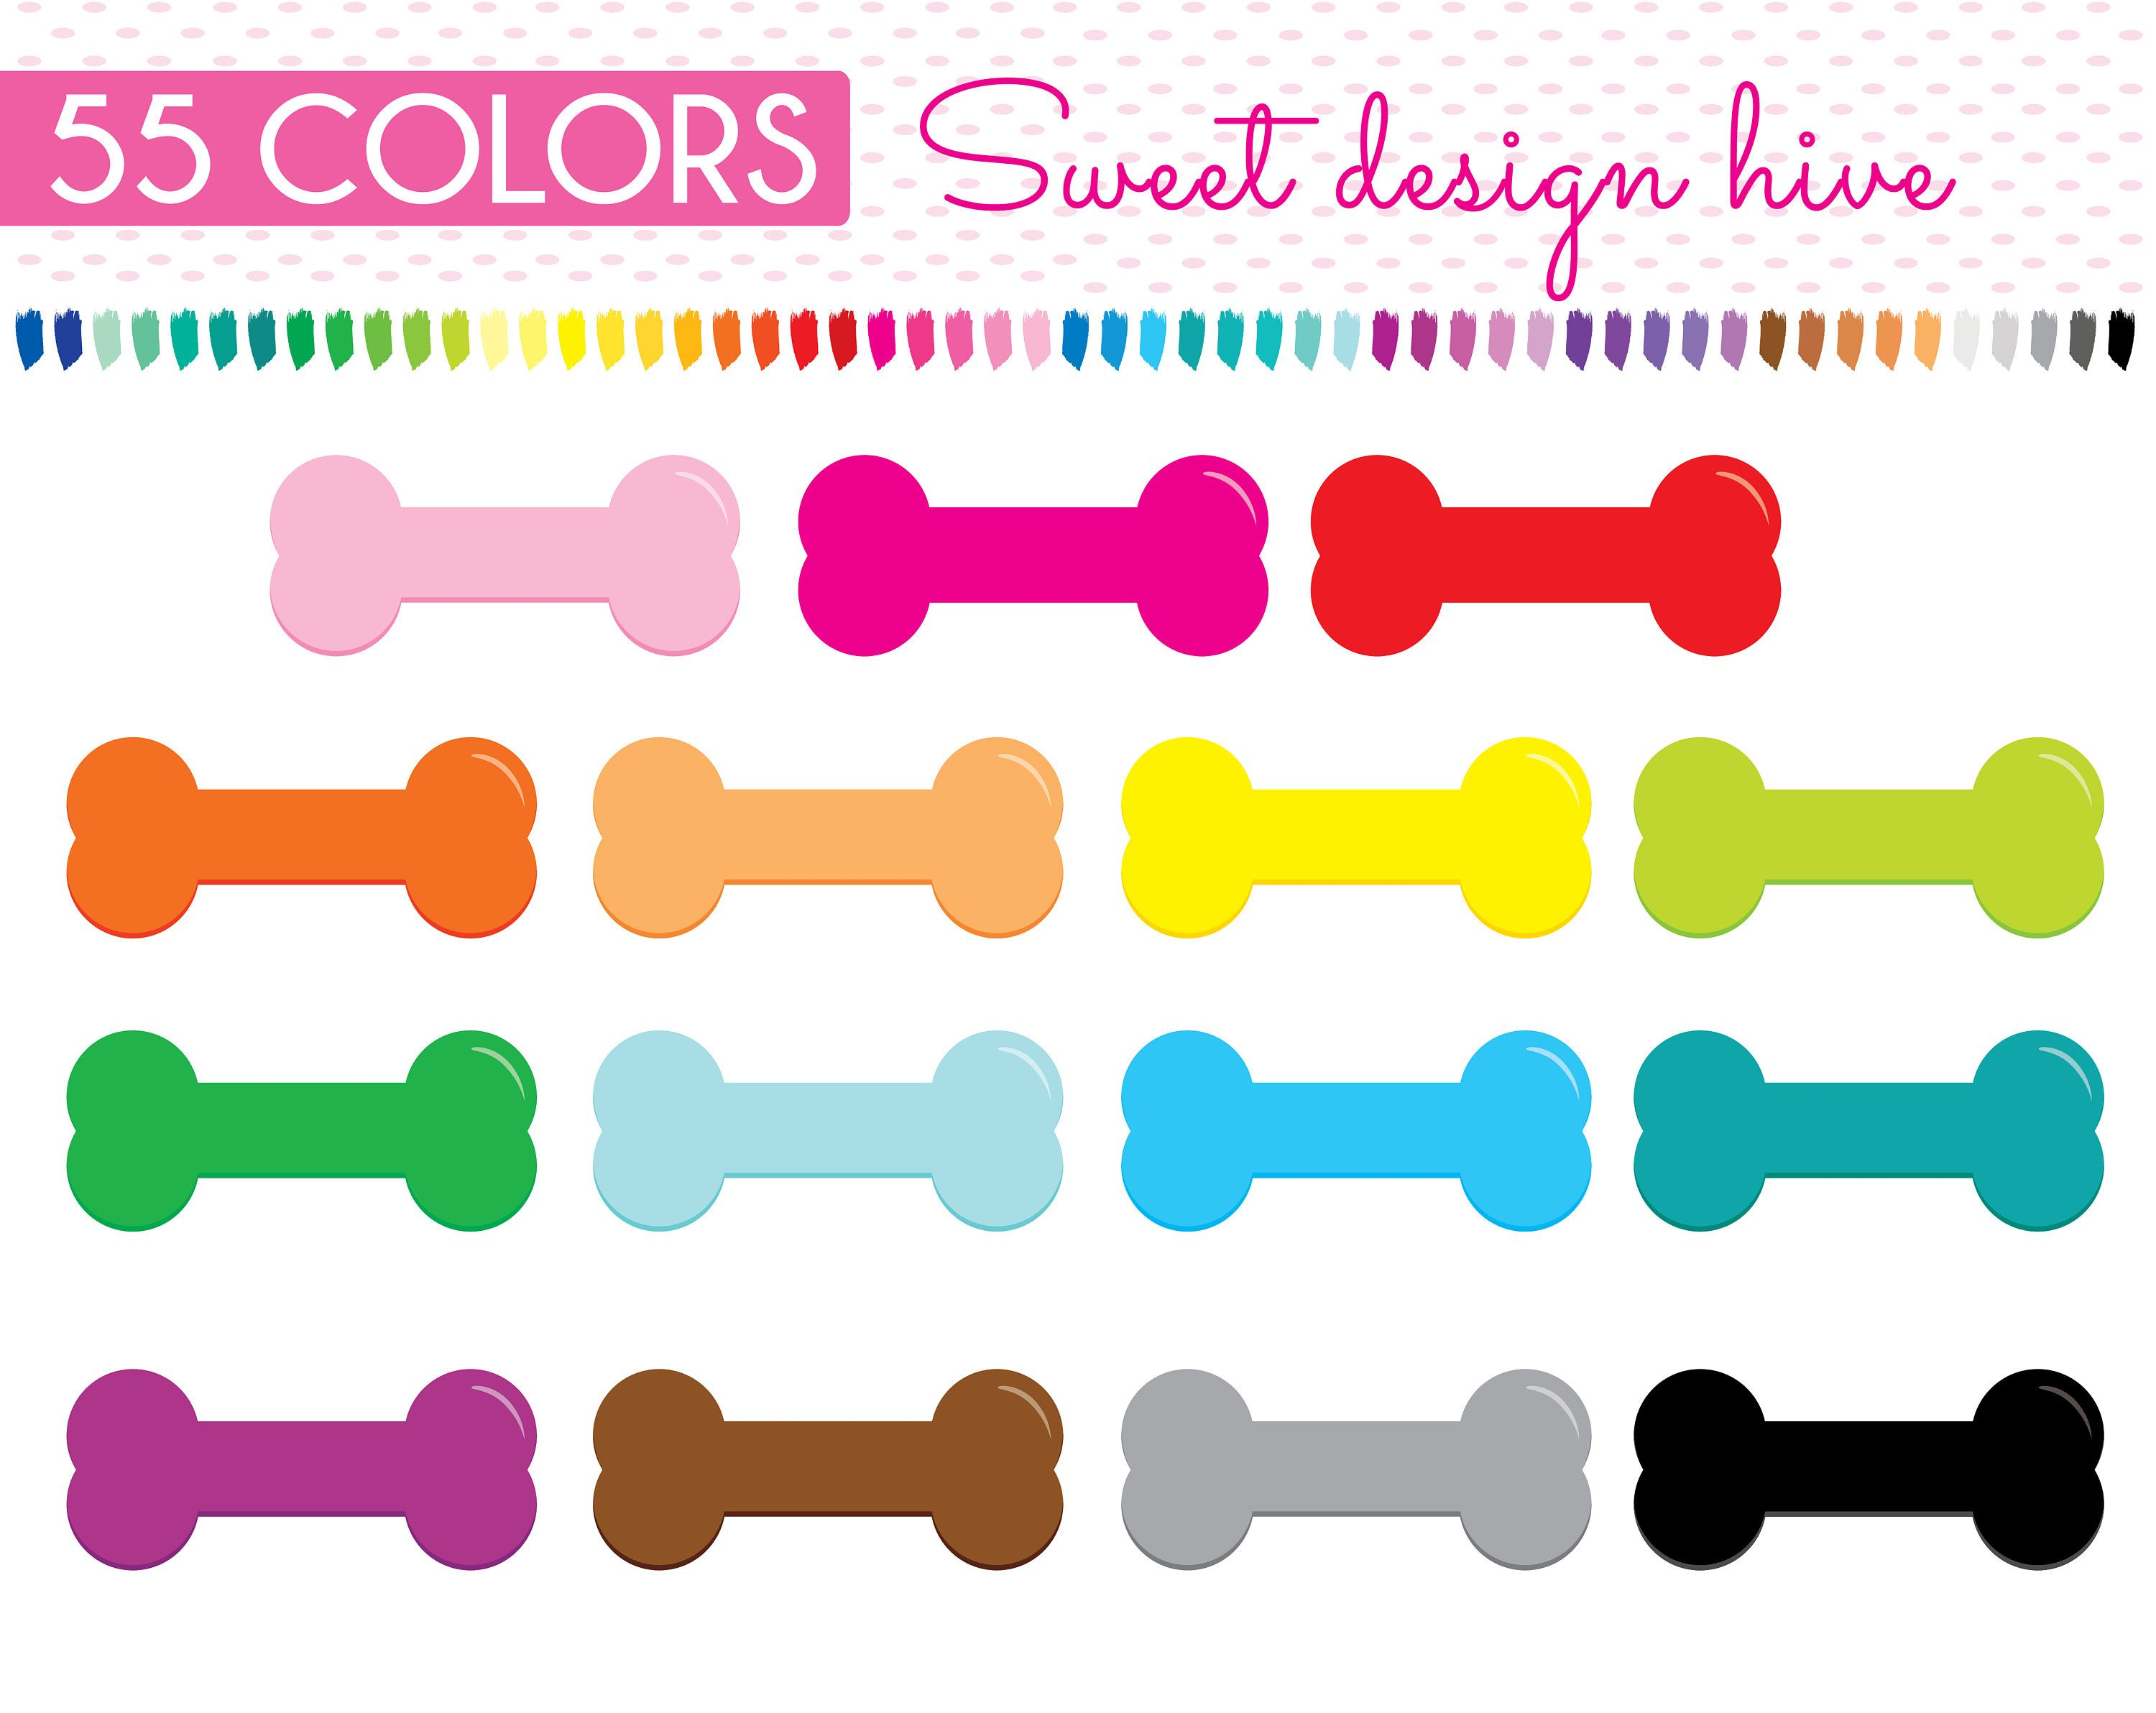 medium resolution of dog bone clipart dog food puppy toy pet rainbow planner stickers graphics sticker clipart planner clipart commercial use pl0087 by sweetdesignhive